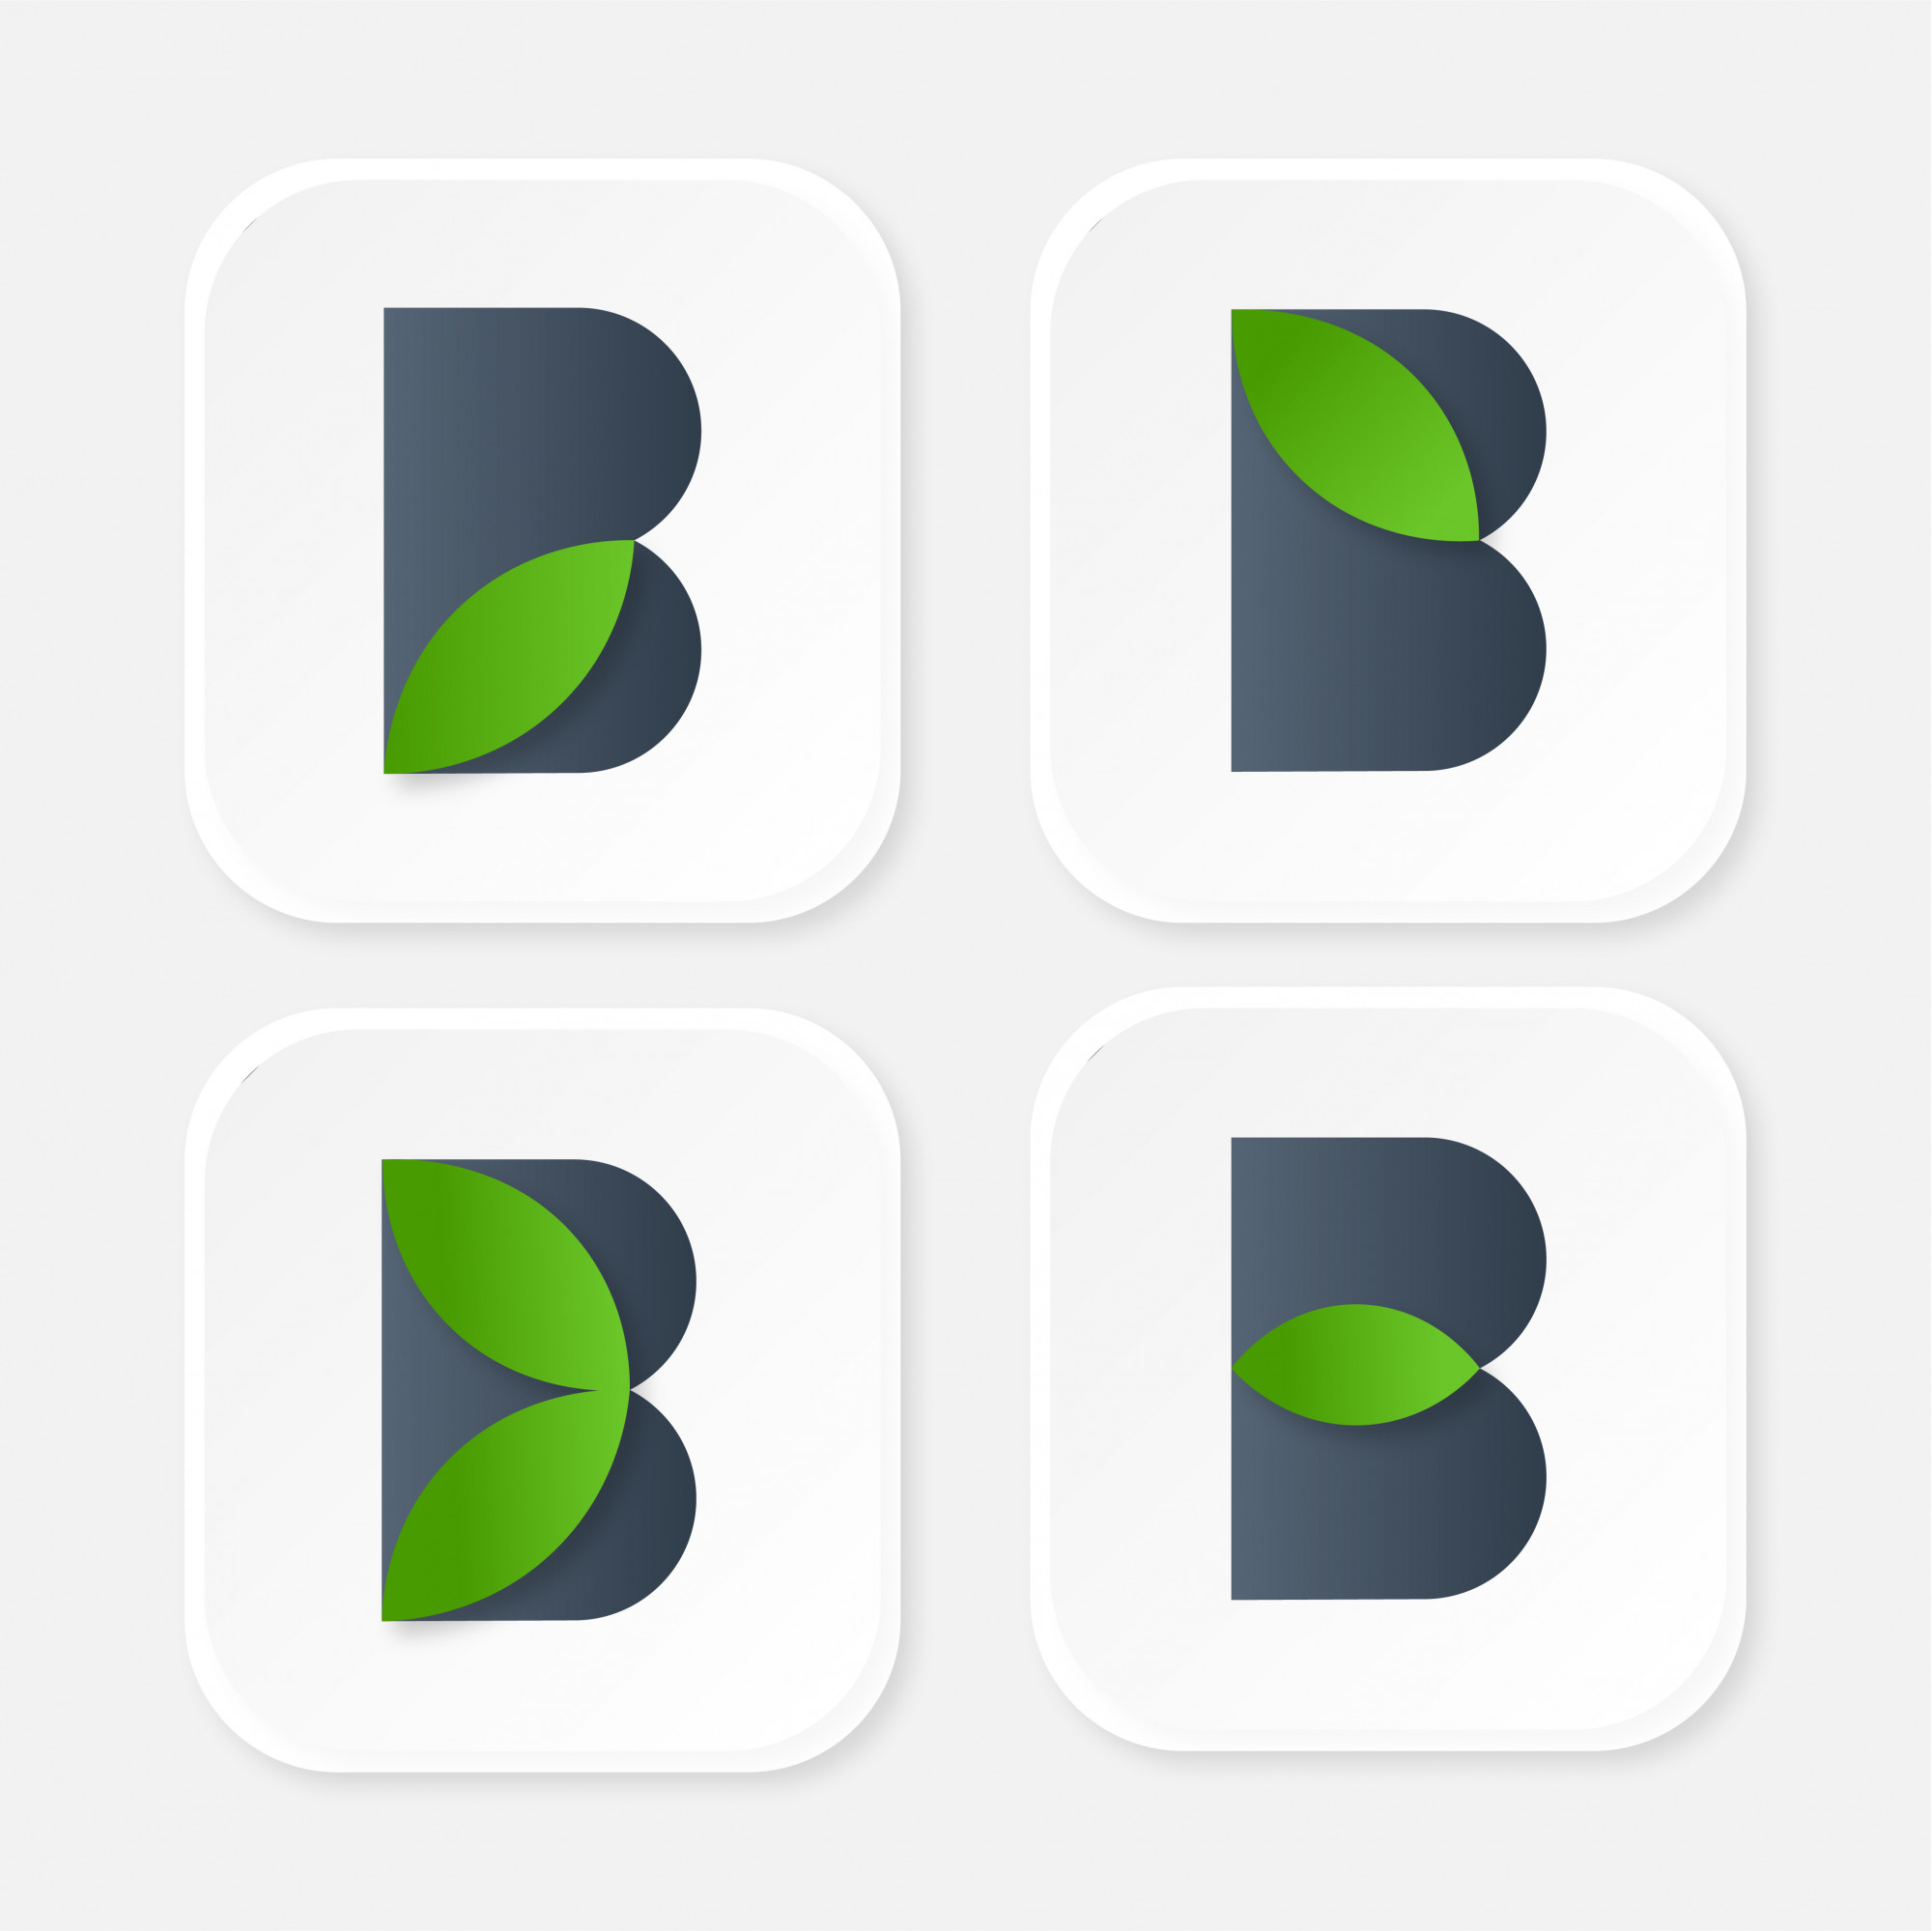 Collection of ecological logos with the letter B